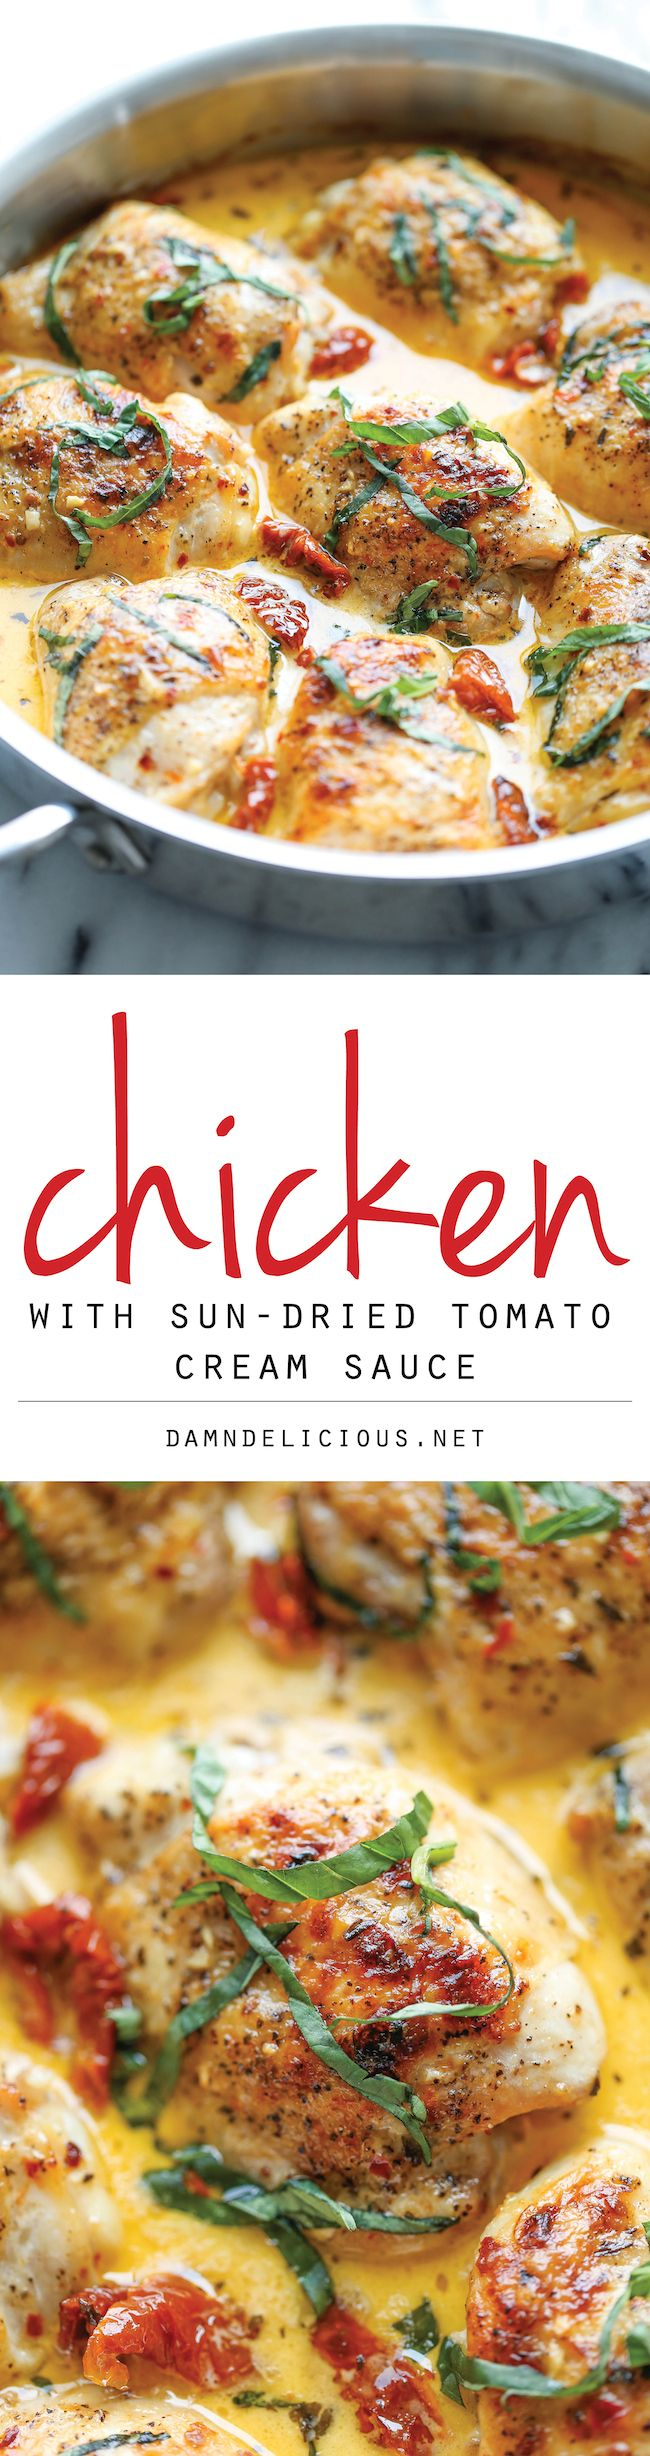 Chicken with Sun-Dried Tomato Cream Sauce •